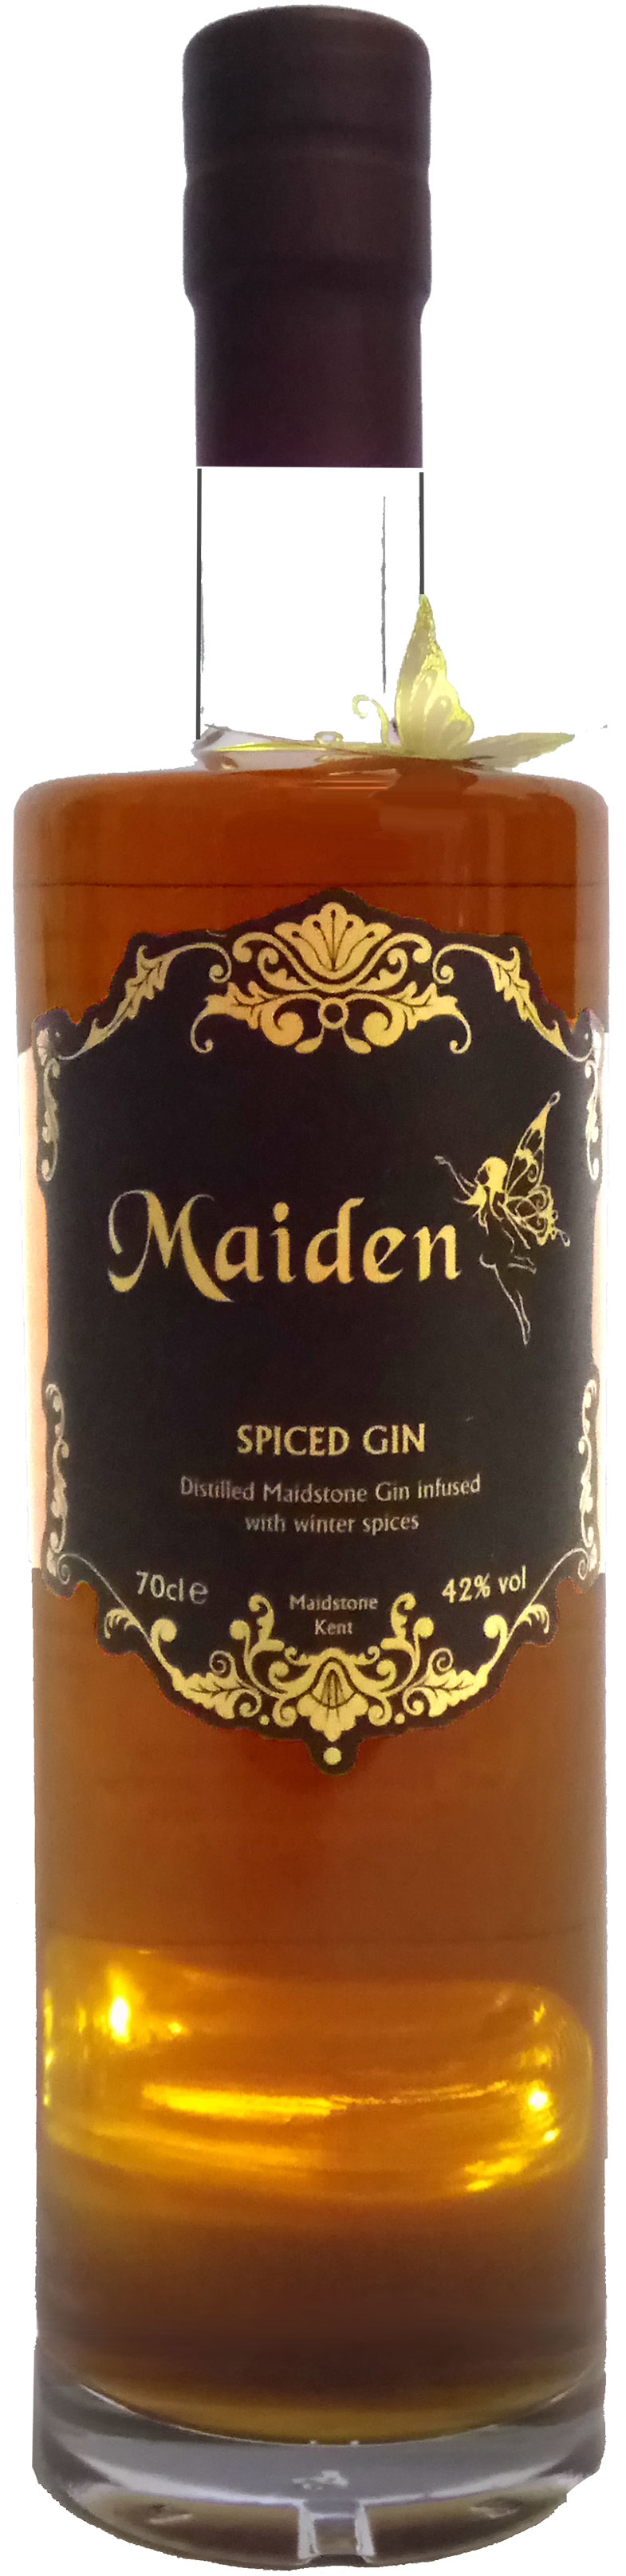 Maiden - Spiced Gin 70cl Bottle